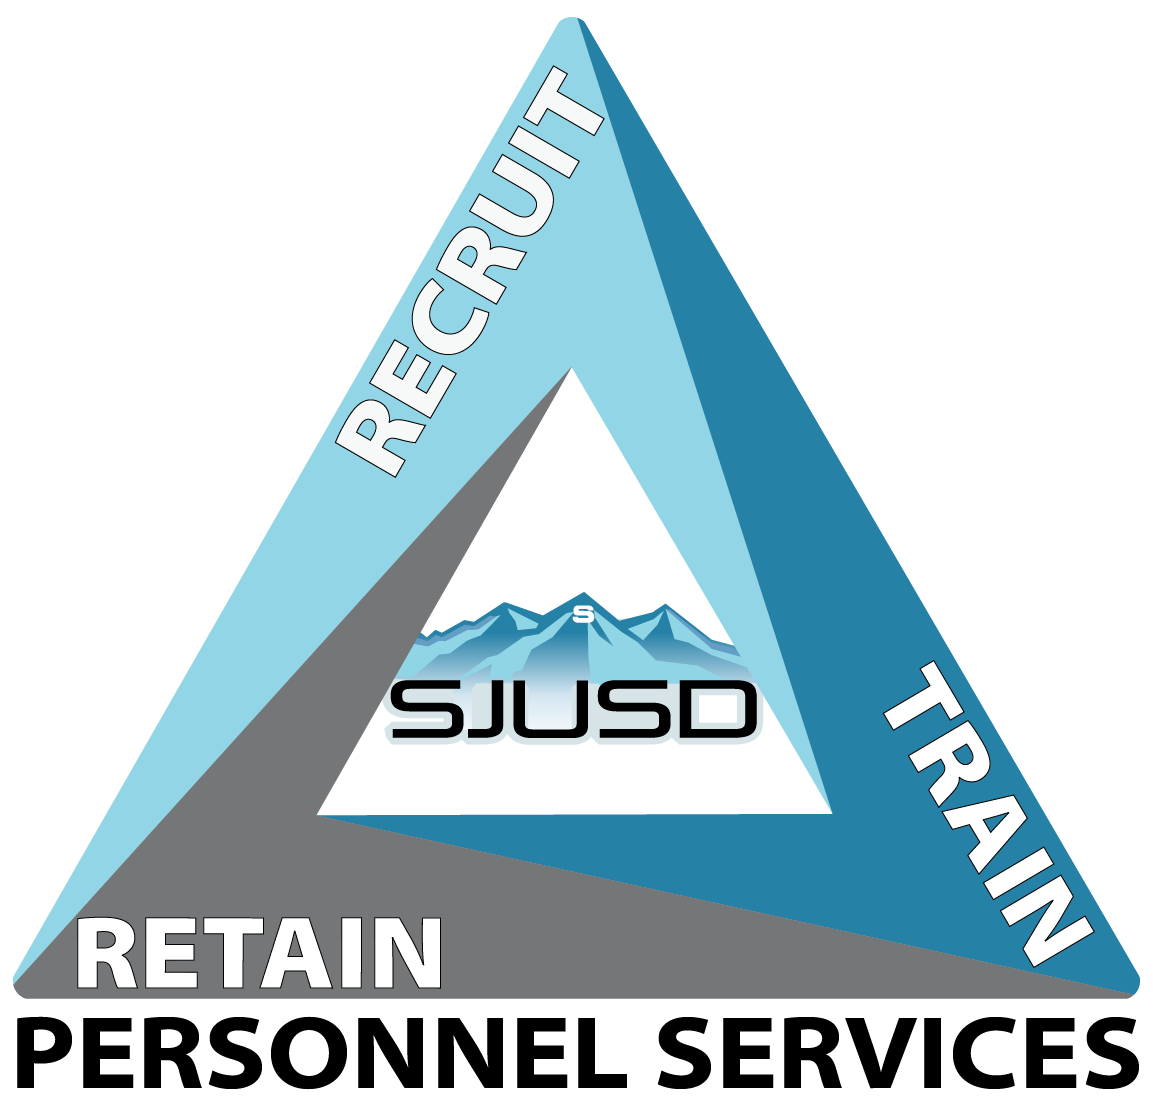 Personnel Logo - Blue Triangle with Recruit, Train and Retain